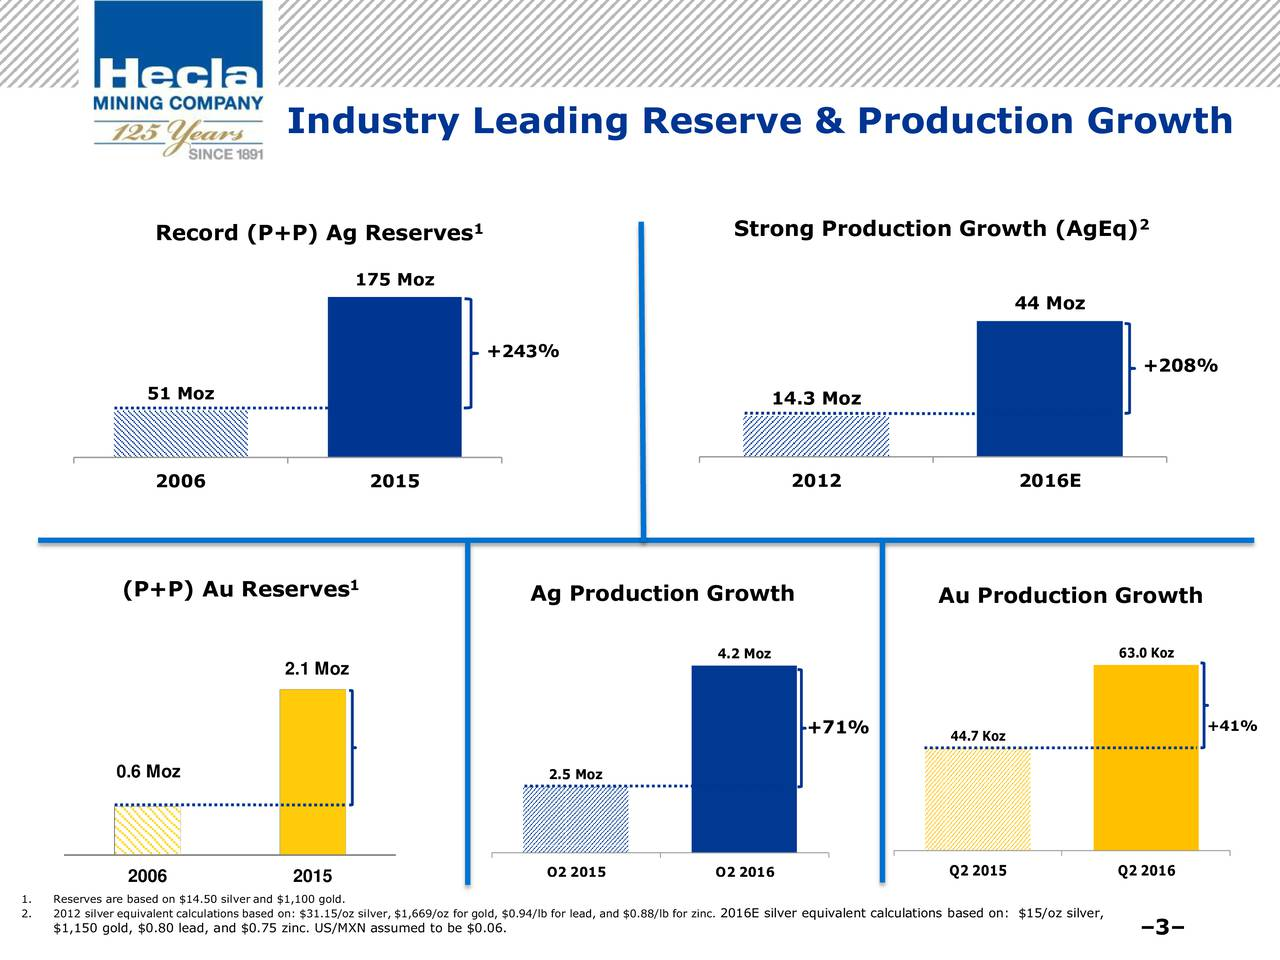 2 Record (P+P) Ag Reserves 1 Strong Production Growth (AgEq) 175 Moz 44 Moz +243% +208% 51 Moz 14.3 Moz 2006 2015 2012 2016E (P+P) Au Reserves 1 Ag Production Growth Au Production Growth 4.2 Moz 63.0 Koz 2.1 Moz +71% 44.7 Koz +41% 0.6 Moz 2.5 Moz 2006 2015 Q2 2015 Q2 2016 Q2 2015 Q2 2016 1. Reserves are based on $14.50 silver and $1,100 gold. 2. 2012 silver equivalent calculations based on: $31.15/oz silver, $1,669/oz for gold, $0.94/lb for lead, and $0.88/lb for zinc. 2016E silver equivalent calculations based on: $15/oz silver, $1,150 gold, $0.80 lead, and $0.75 zinc. US/MXN assumed to be $0.06. 3